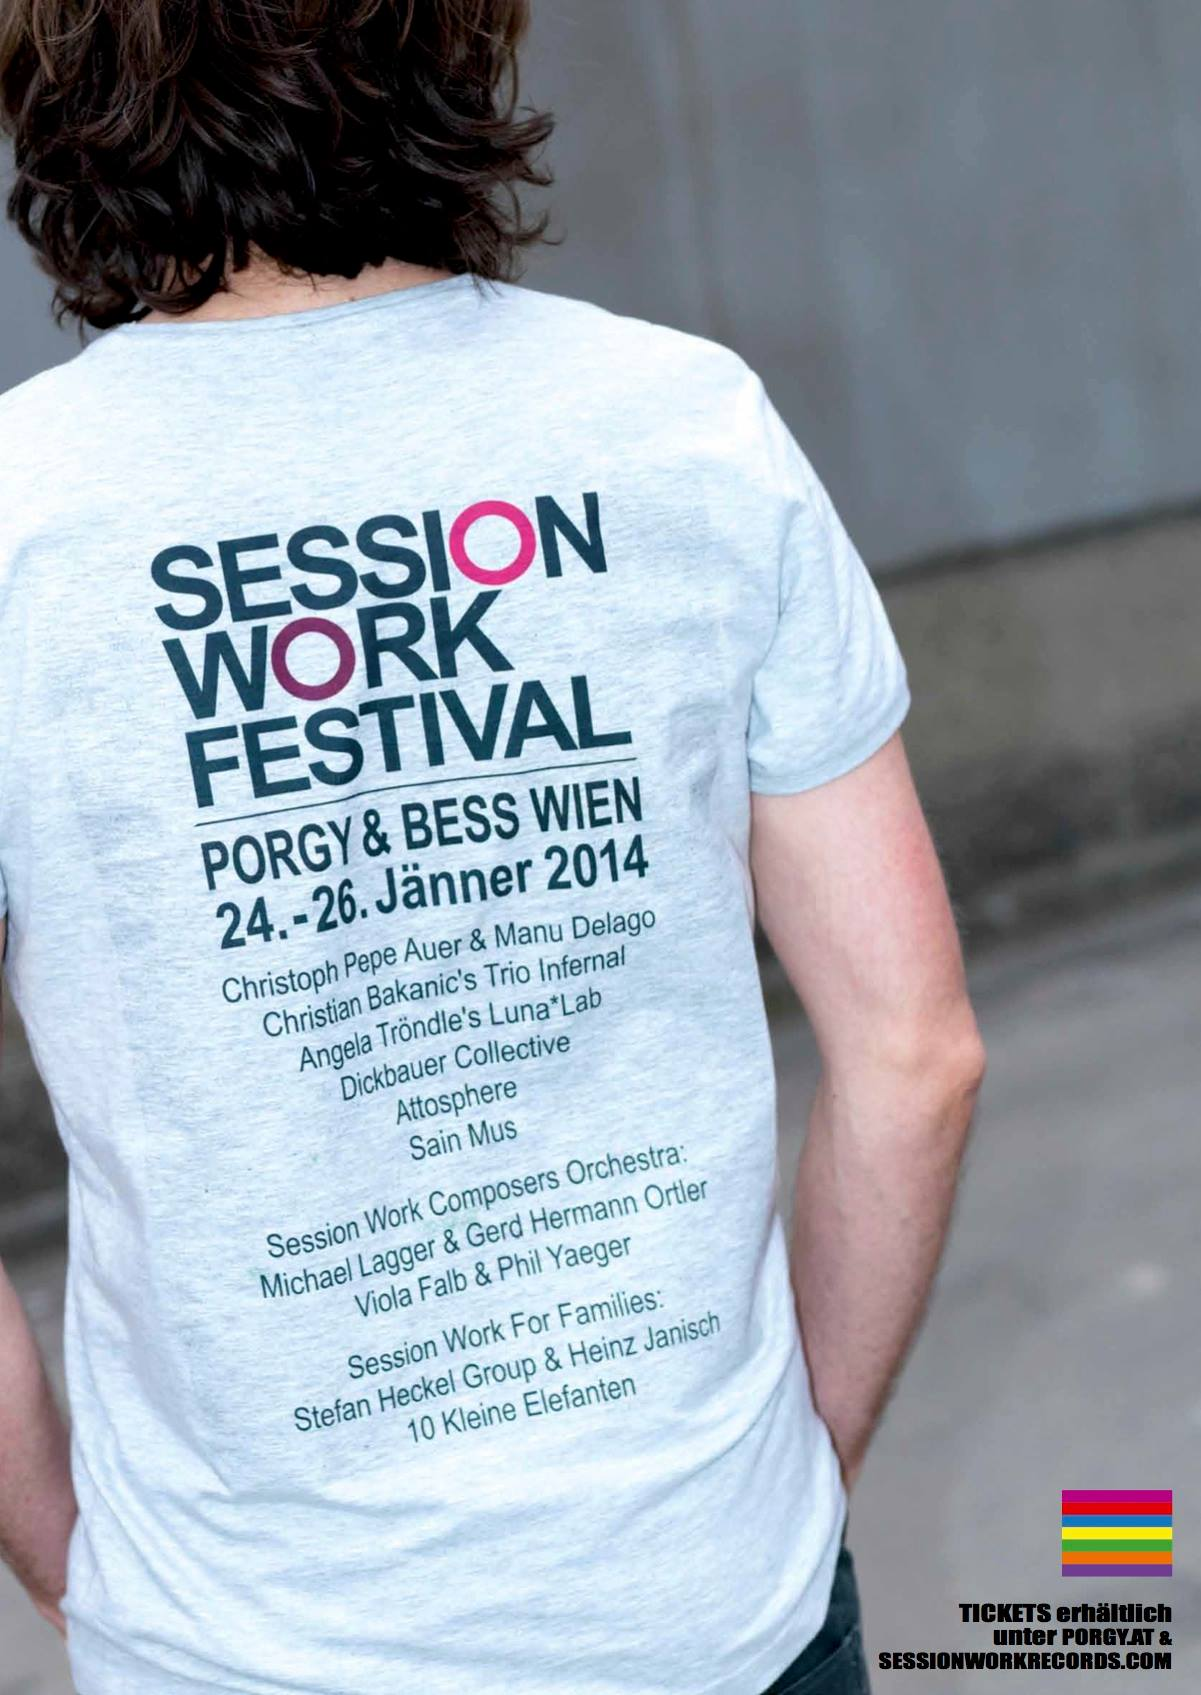 Session Work Festival 2014